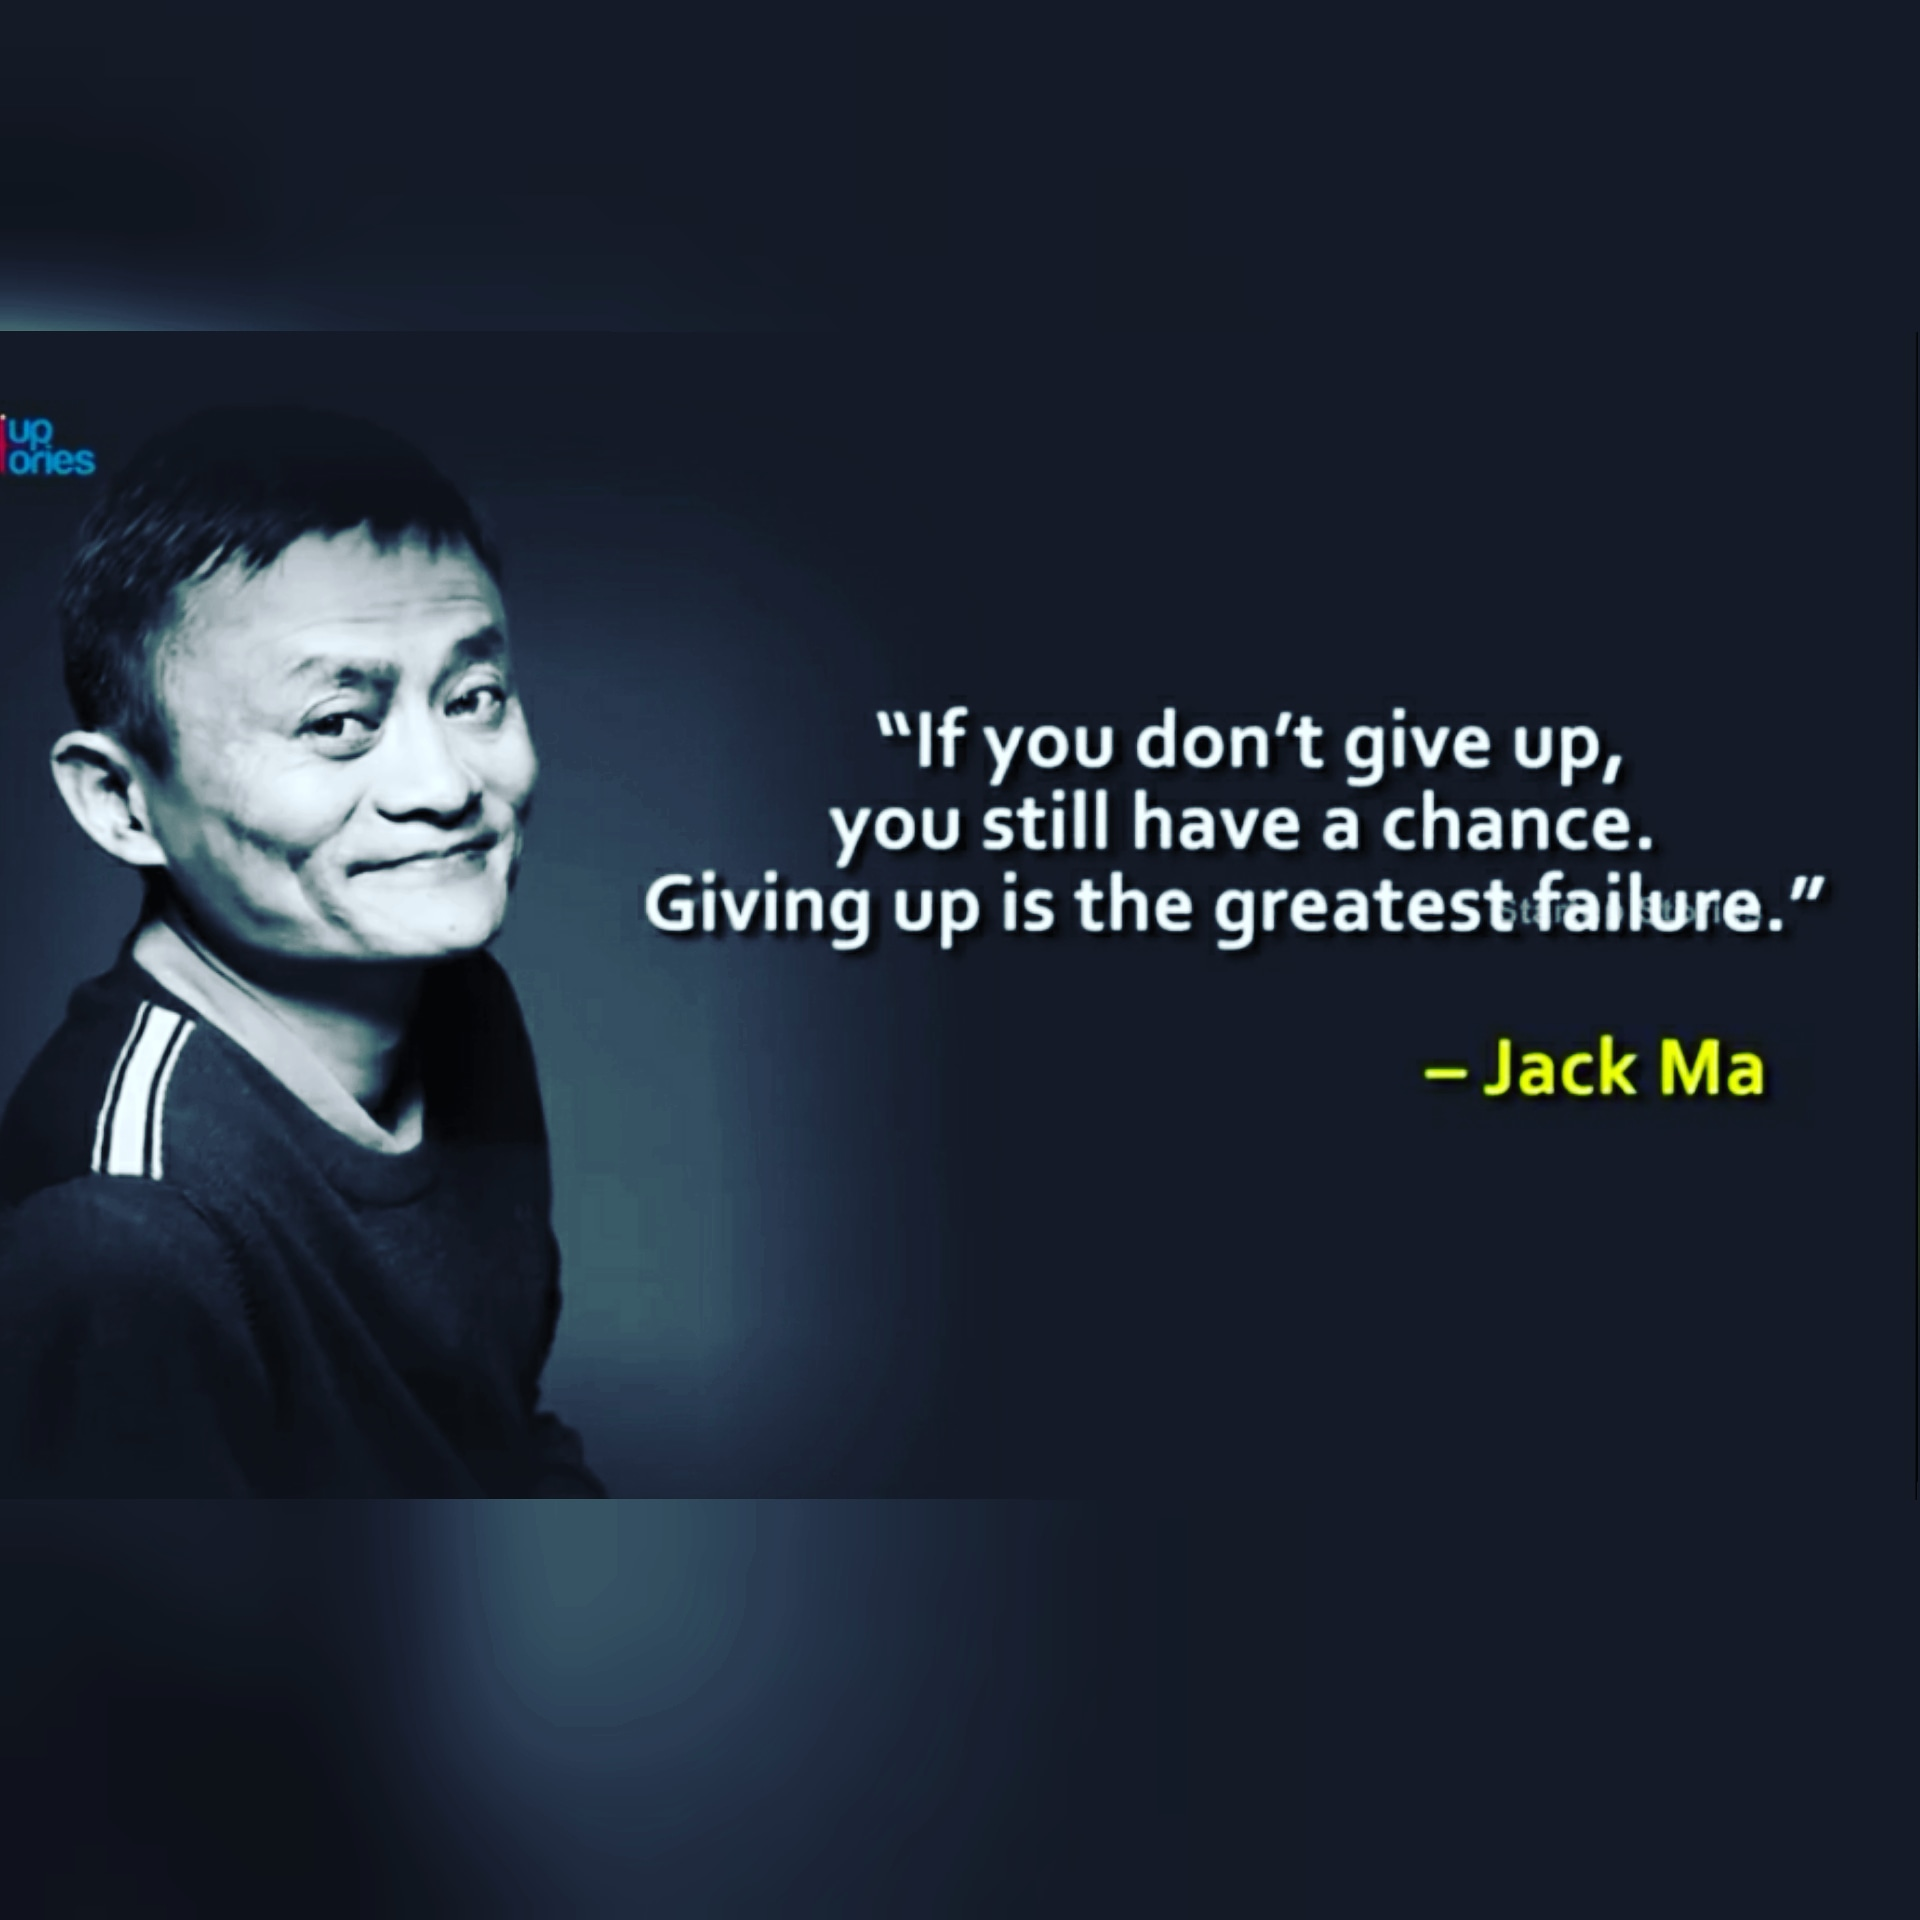 """ If you don't give up, you still have a chance. Giving up is the greatest failure."" – Jack Ma [1920 x 1920]"